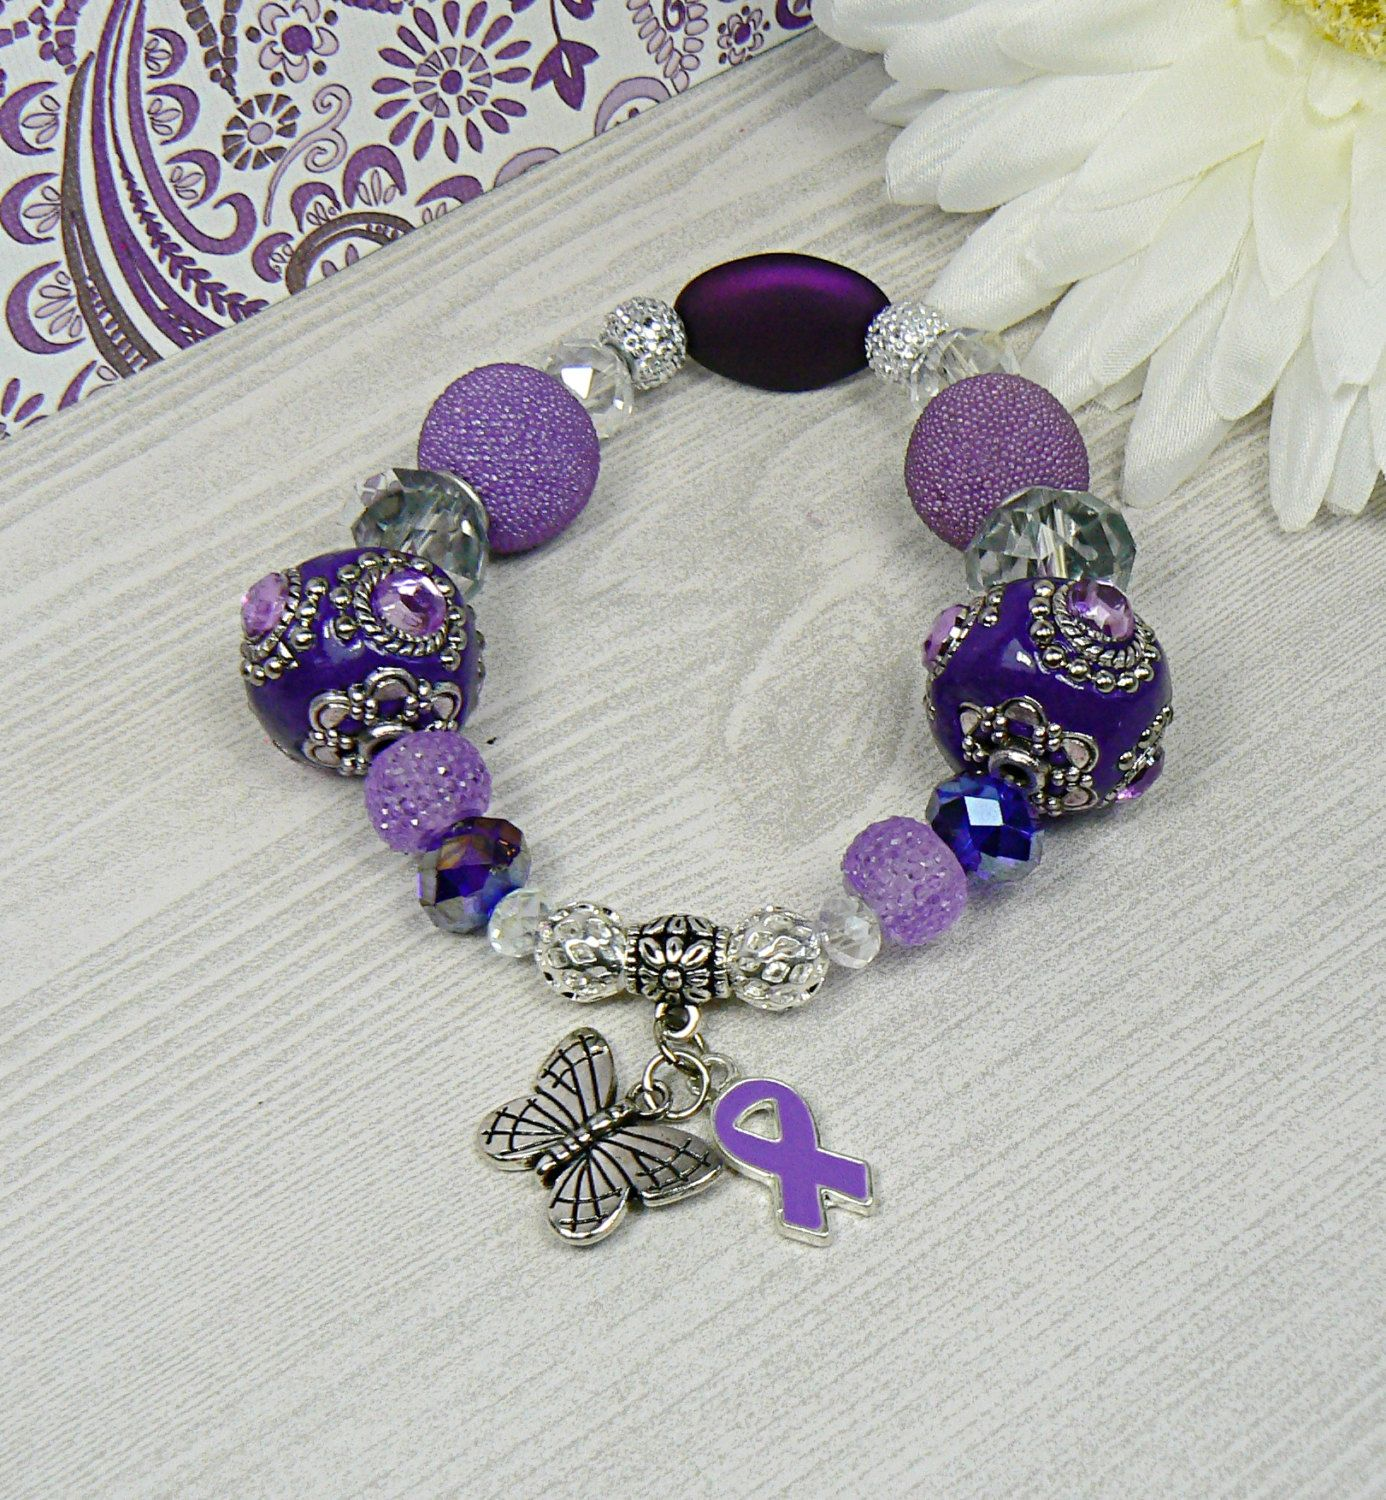 dark bracelet jewelry alzheimer amazon purple s com and prepackaged alzheimers uses dp awareness in white